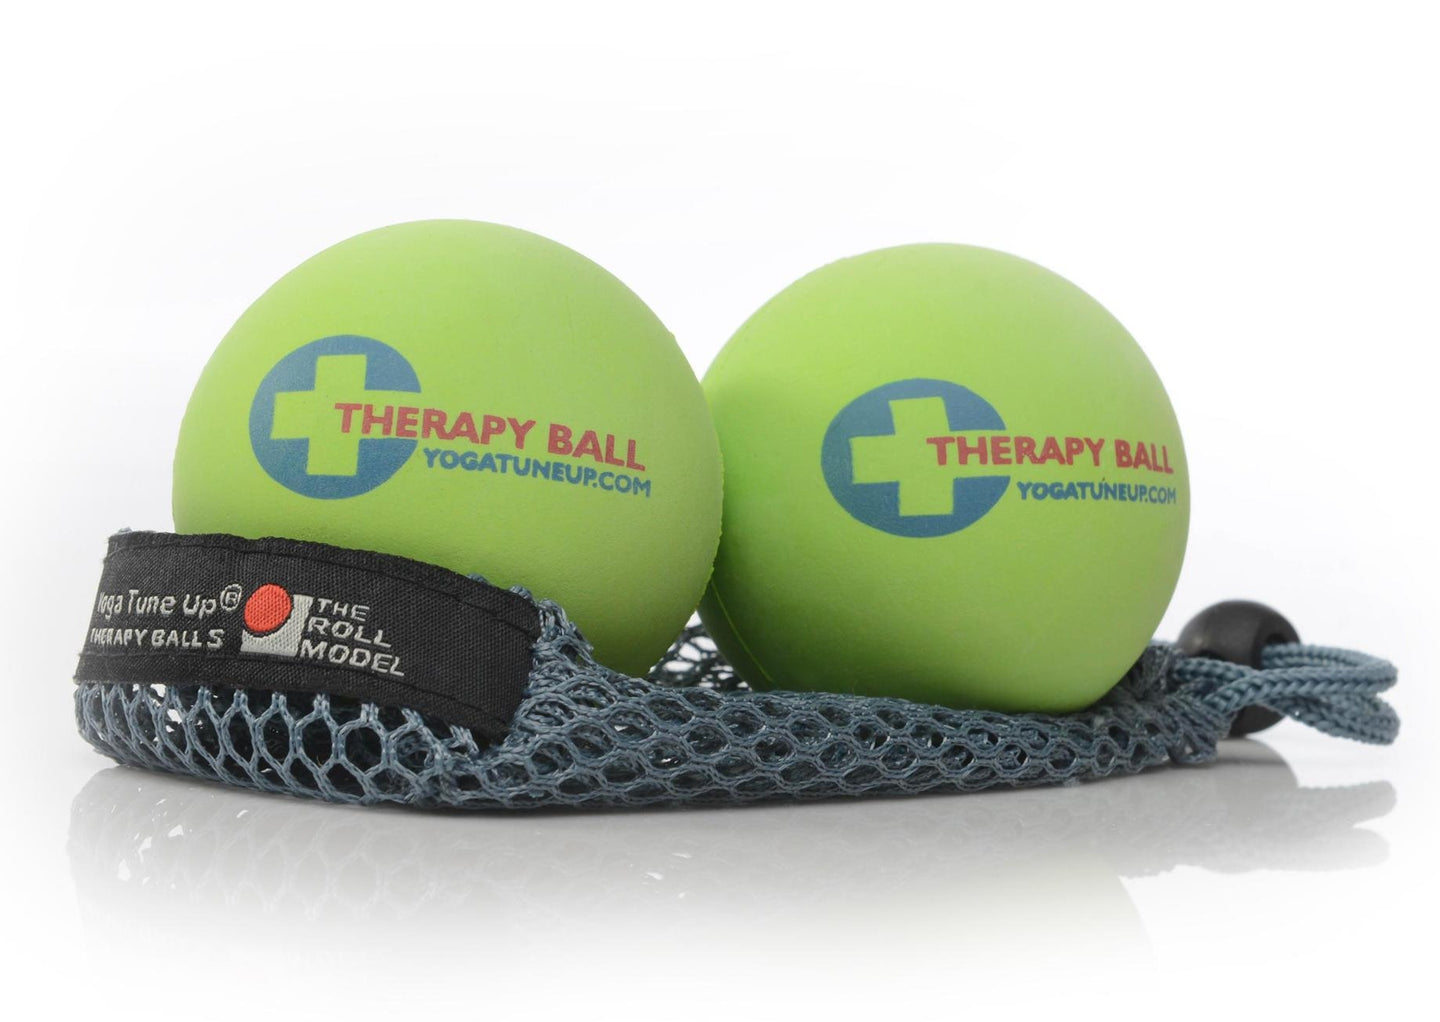 Two green massage balls printed with